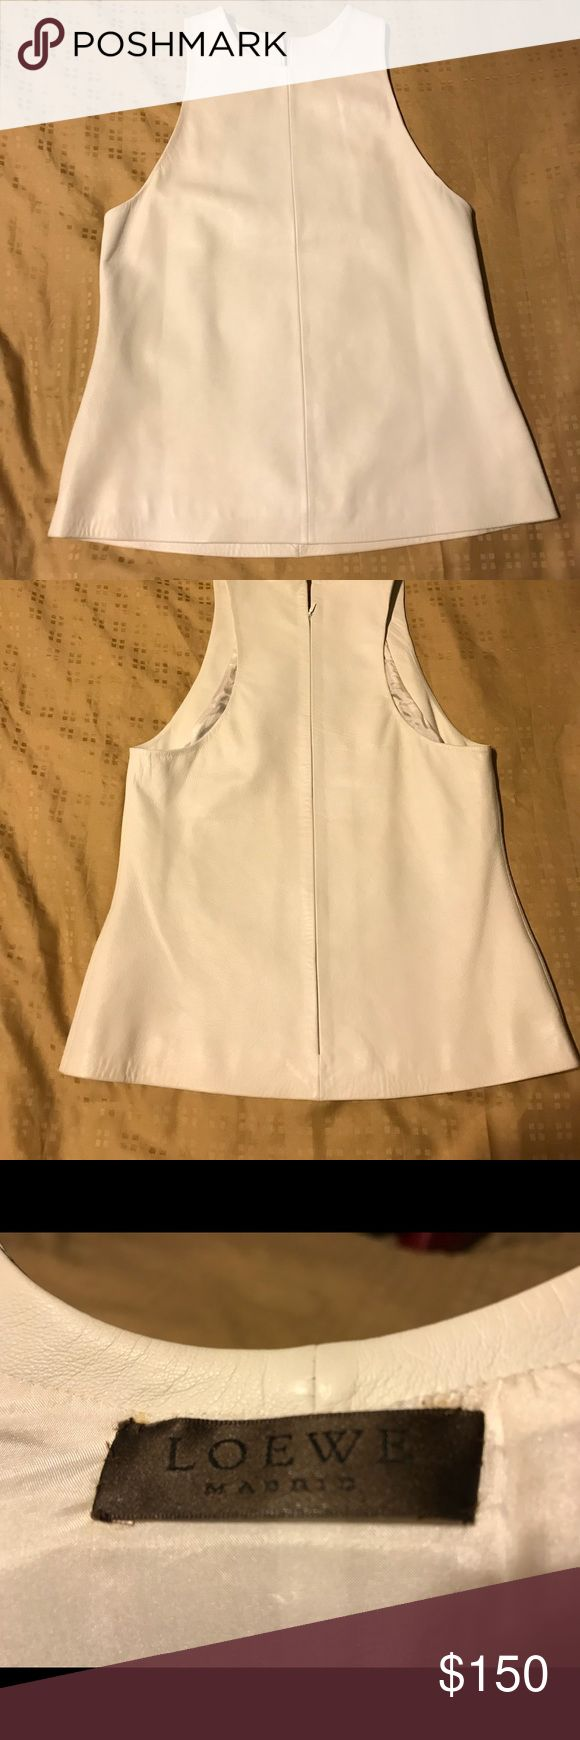 Loewe leather top. Off white. Size 40 Soft leather. Chic and cute. Perfect match with my red Prada leather skirt. New condition, only wear few tines. Love it so much but now gaining weight. European size 40. Loewe Tops Tees - Short Sleeve